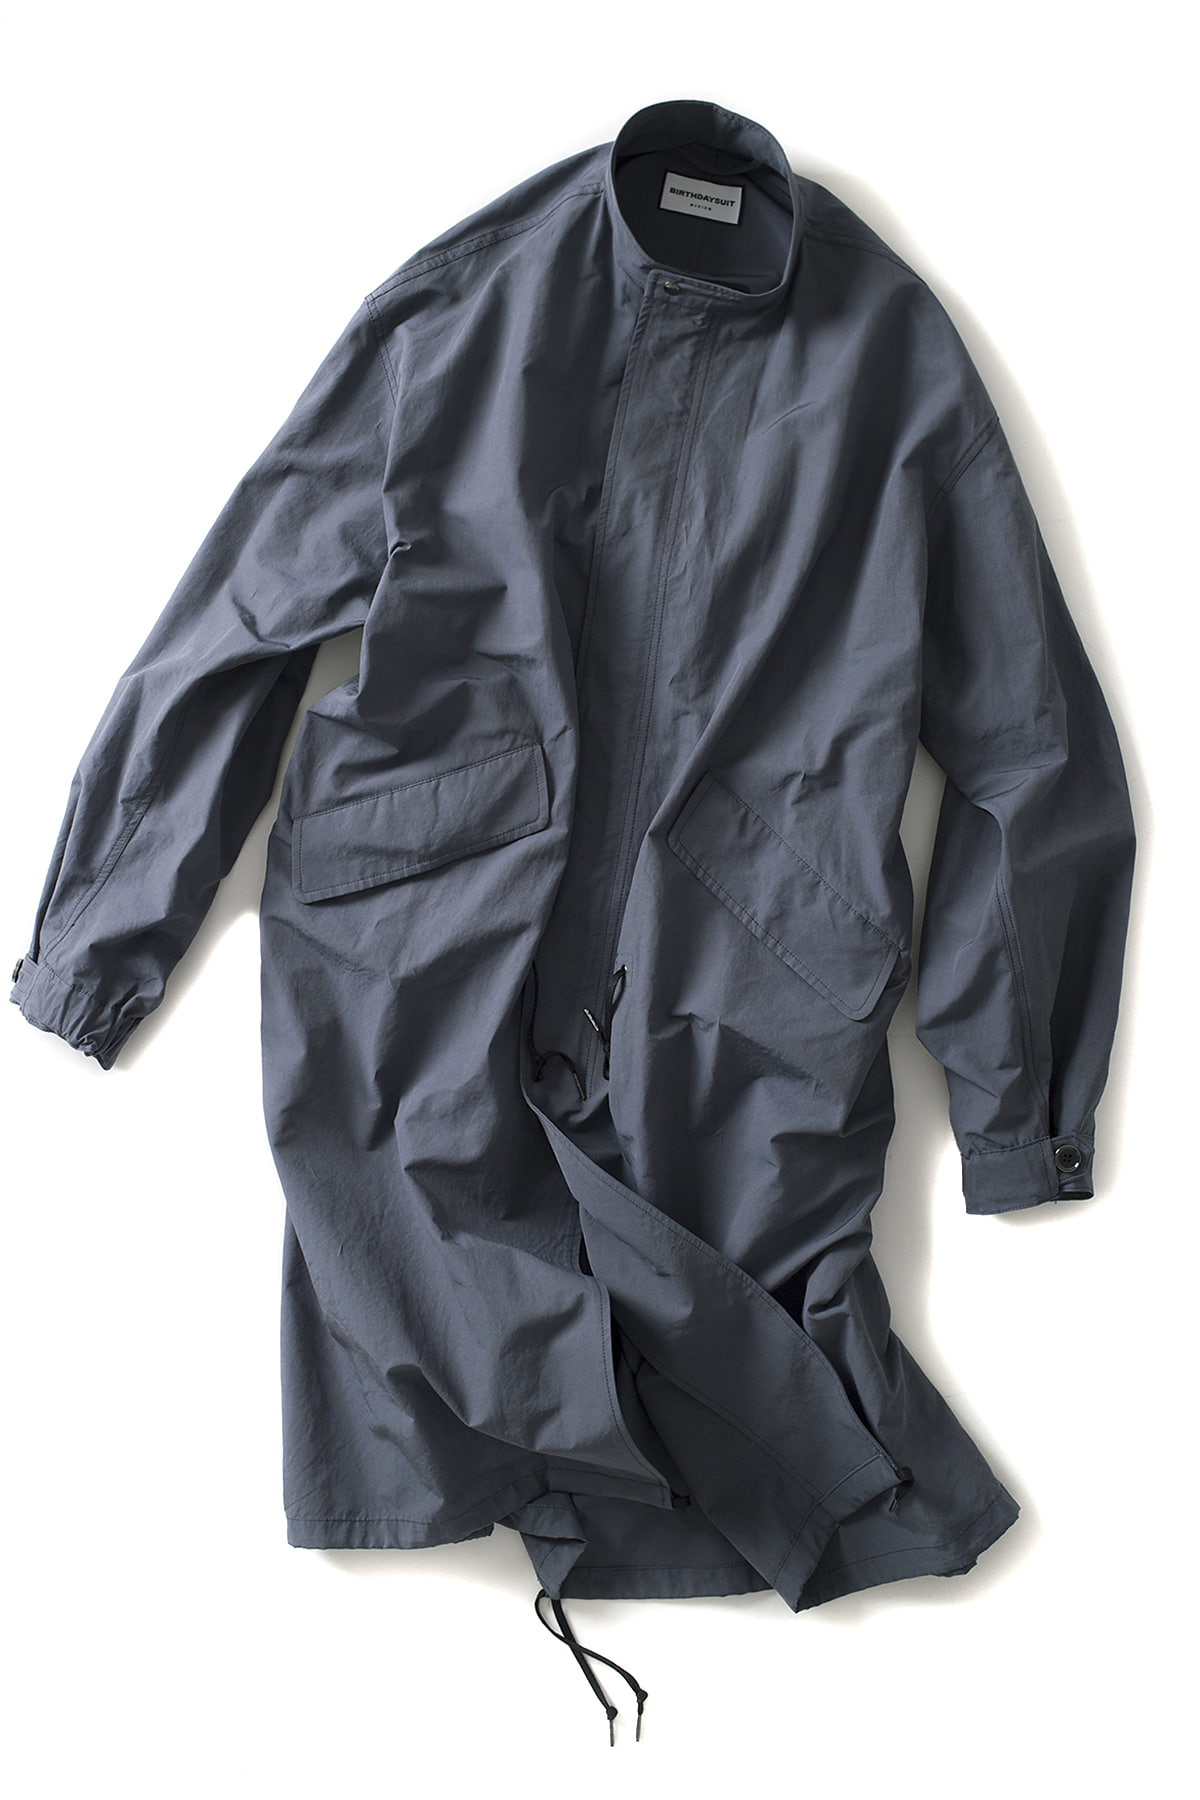 BIRTHDAYSUIT : Fishtail Parka (L.Slate Grey)